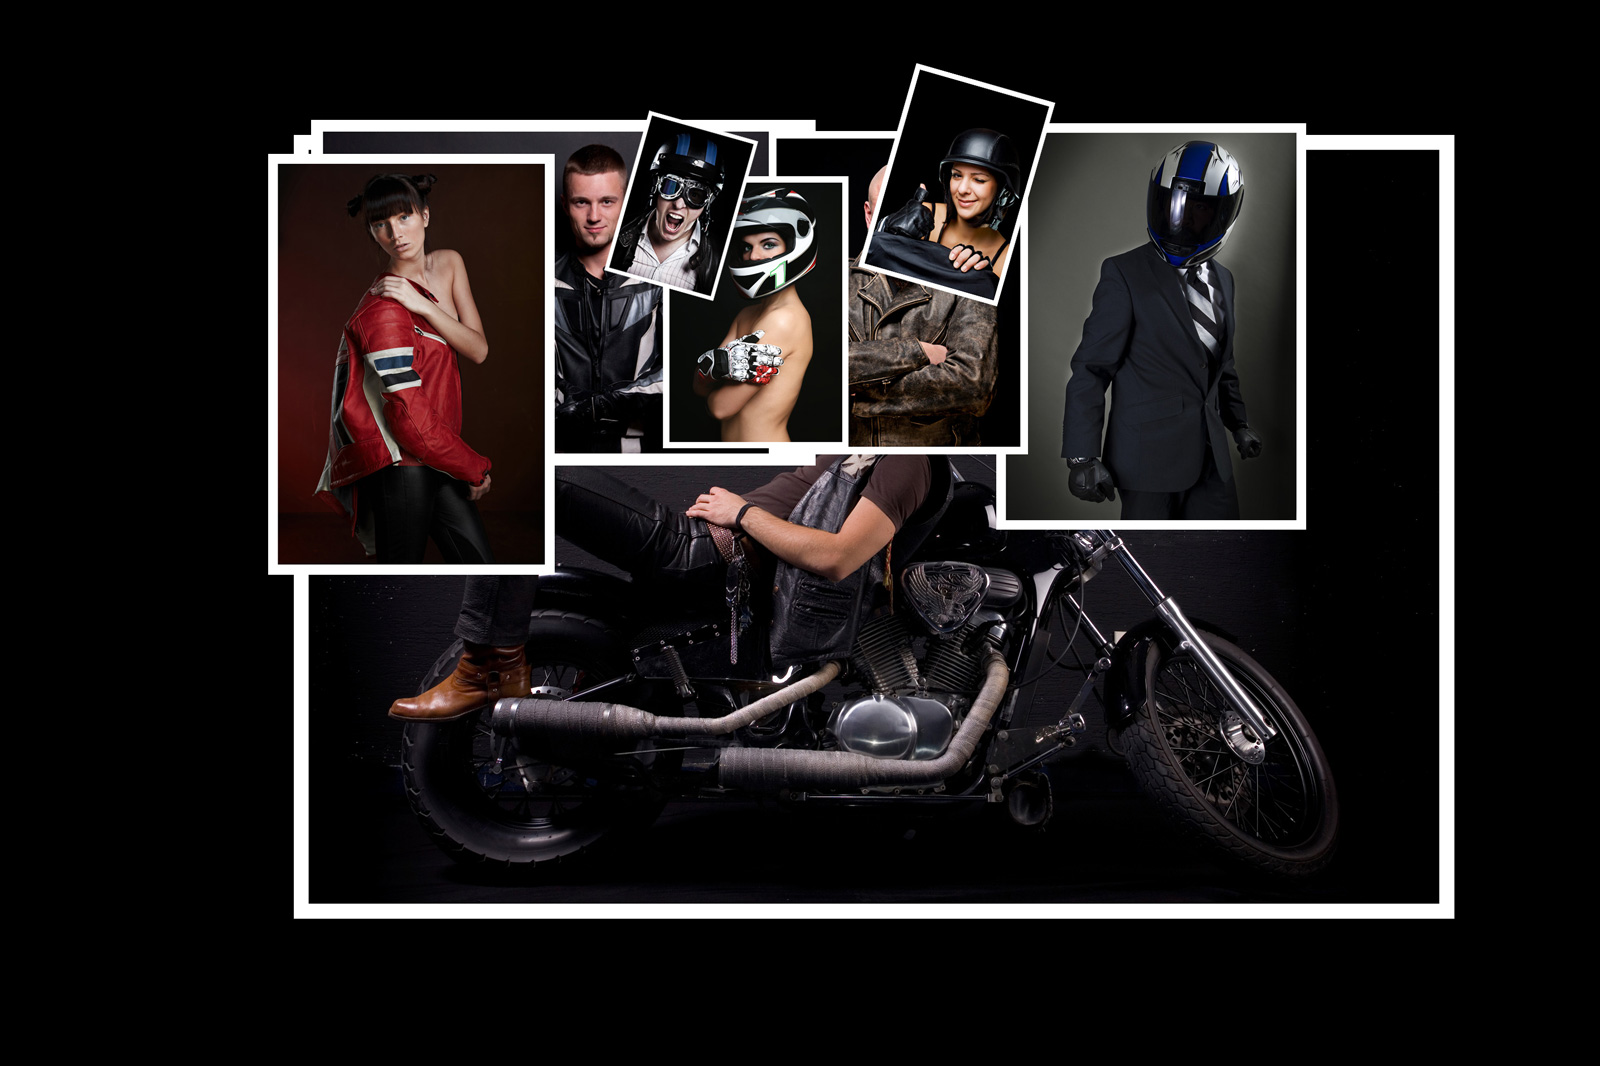 Image manipulation - bikers campaign 1 collated photos